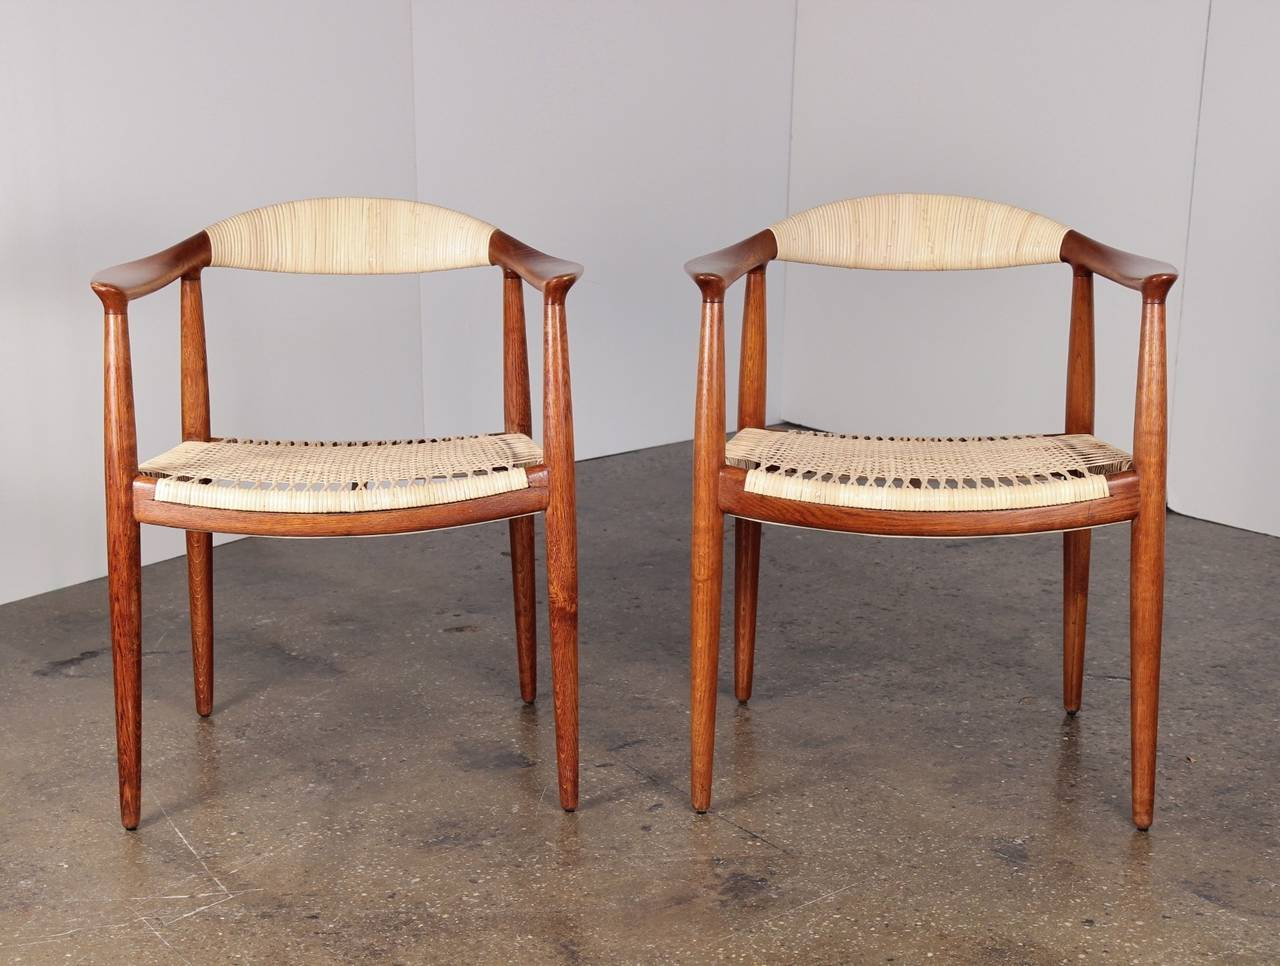 Lovely pair of oak and cane round chairs by Hans J. Wegner. Model JH & Cane Round Chairs by Hans Wegner at 1stdibs